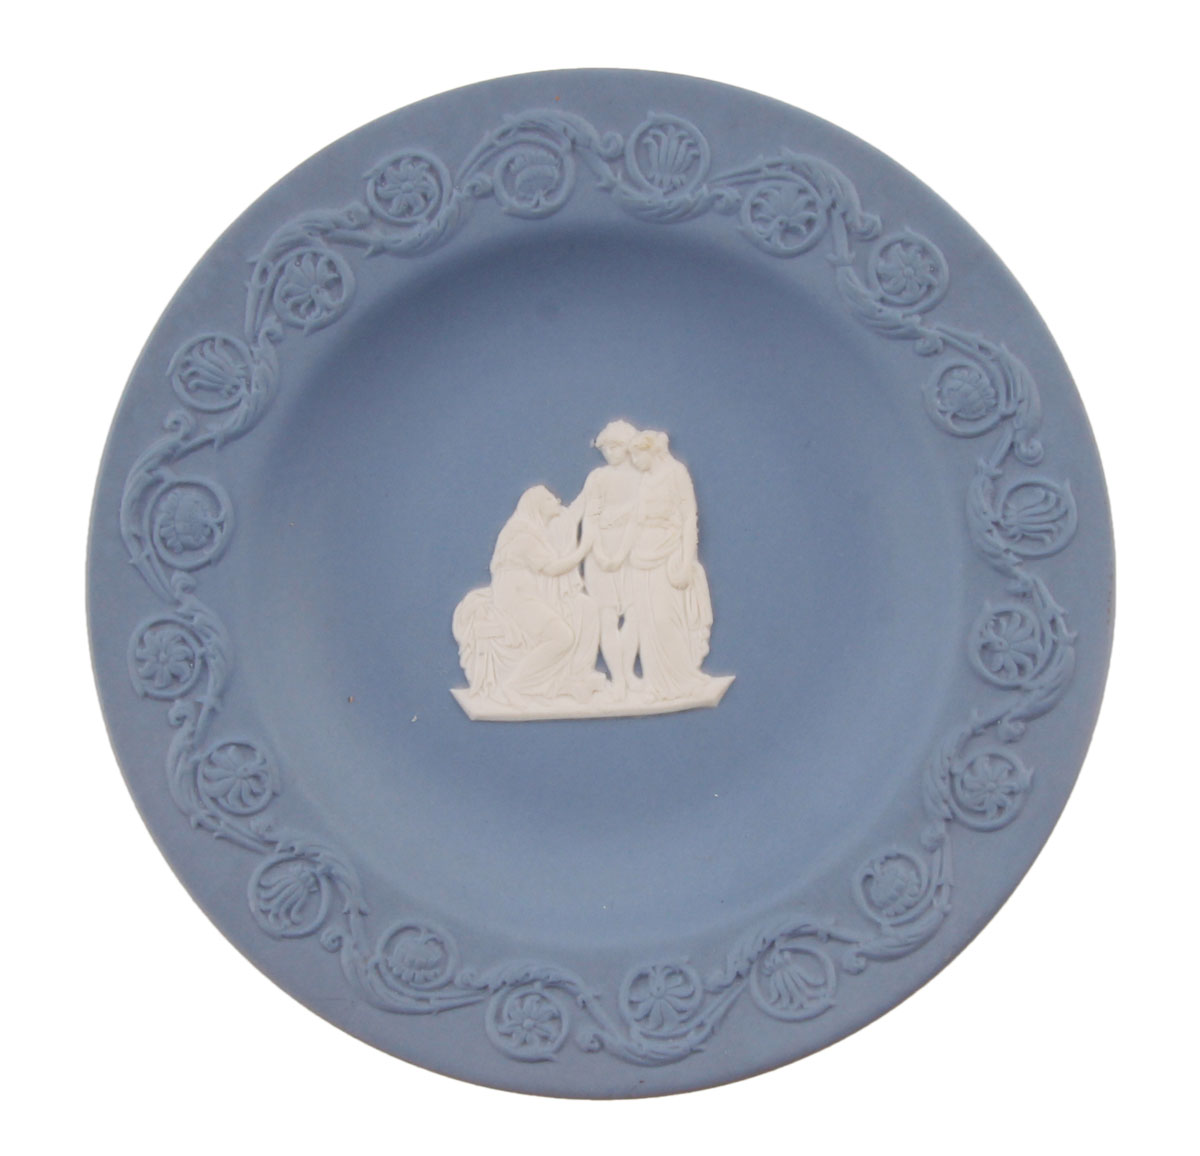 Wedgwood! Блюдце Античная сценка. Фарфор бисквит. Wedgwood, Великобритания, вторая половина XX века game of thrones action figure throne figures chair model a song of ice and fire models sword desk decoration present chirstmas